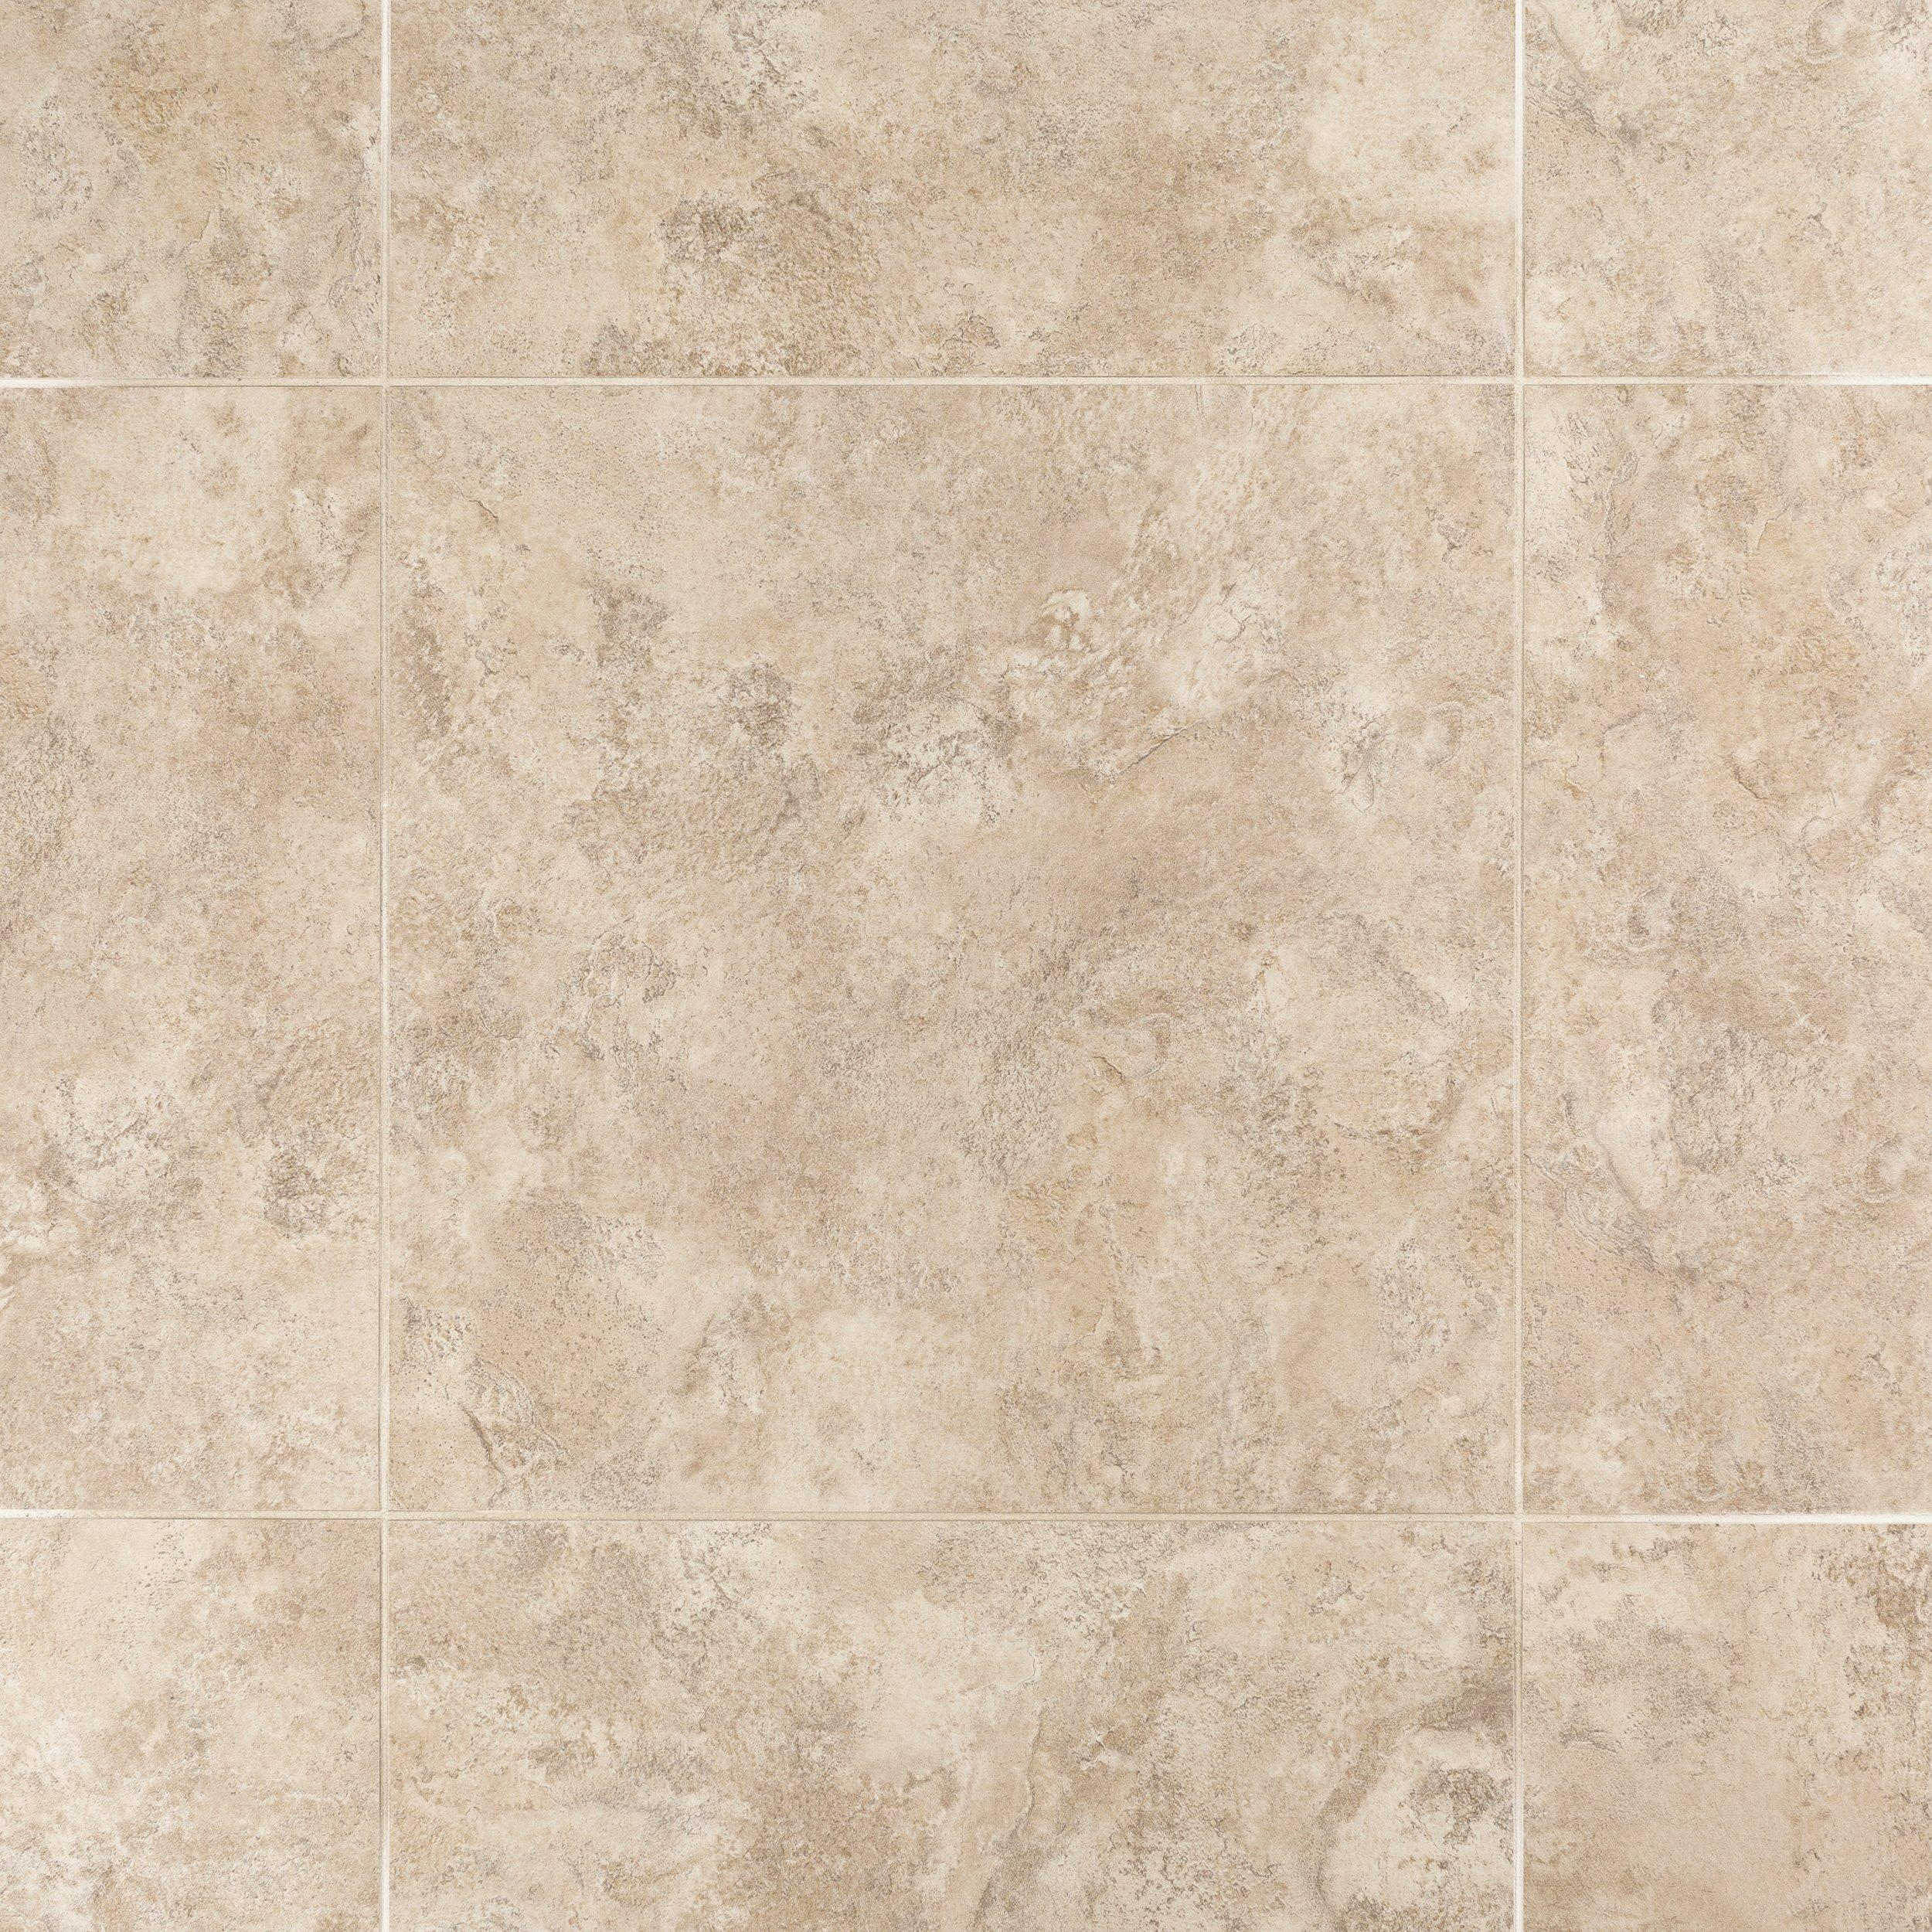 Lystra Almond Porcelain Tile - 13 x 13 - 100053636 | Floor and Decor